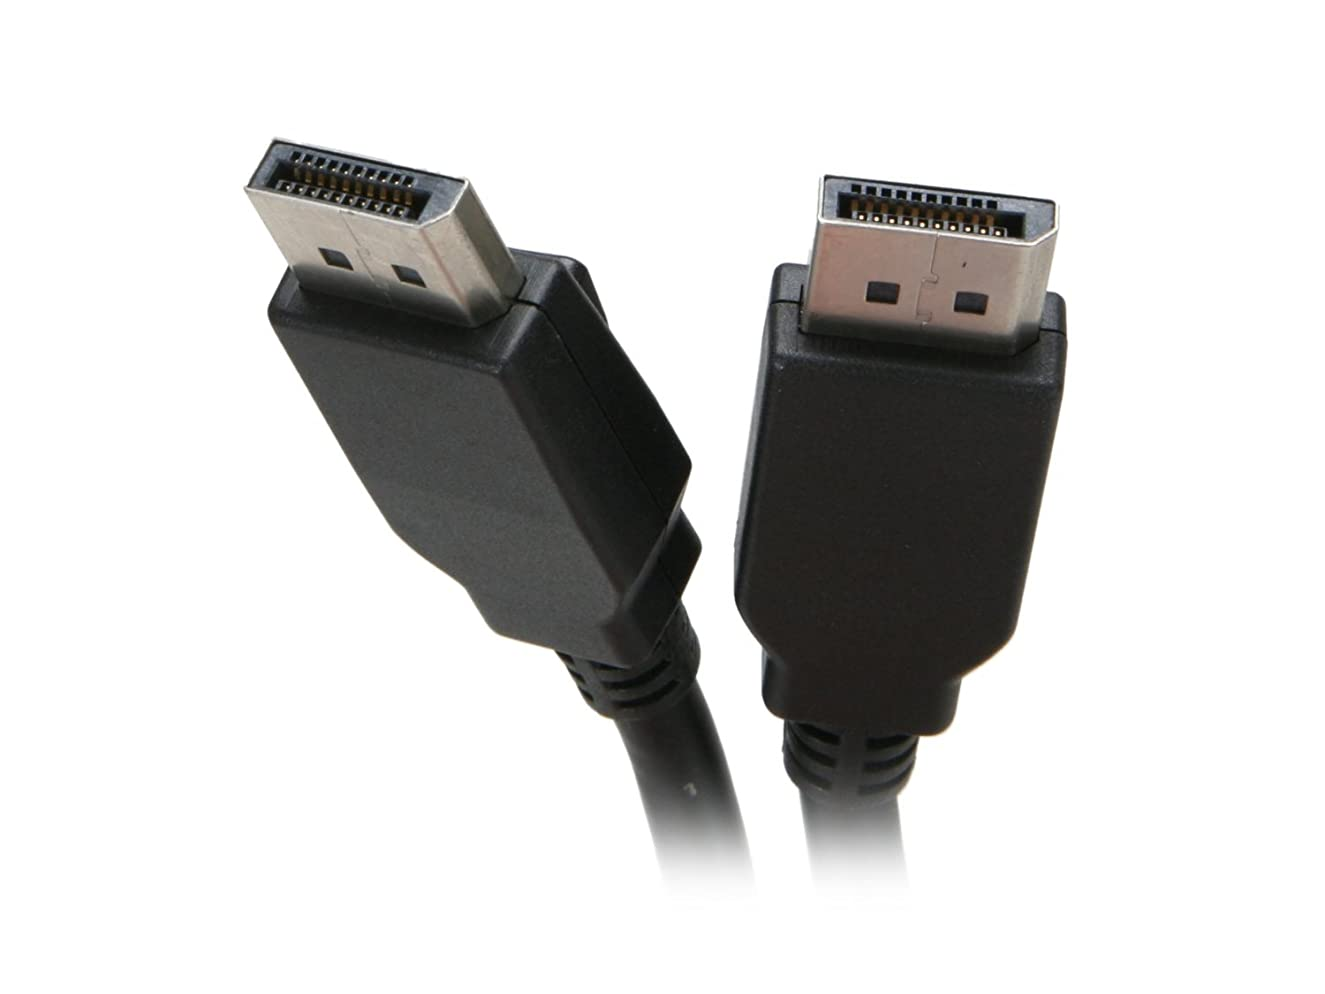 Nippon Labs DP-10-MM 10' DisplayPort Male to DisplayPort Male Cable for Digital Monitor